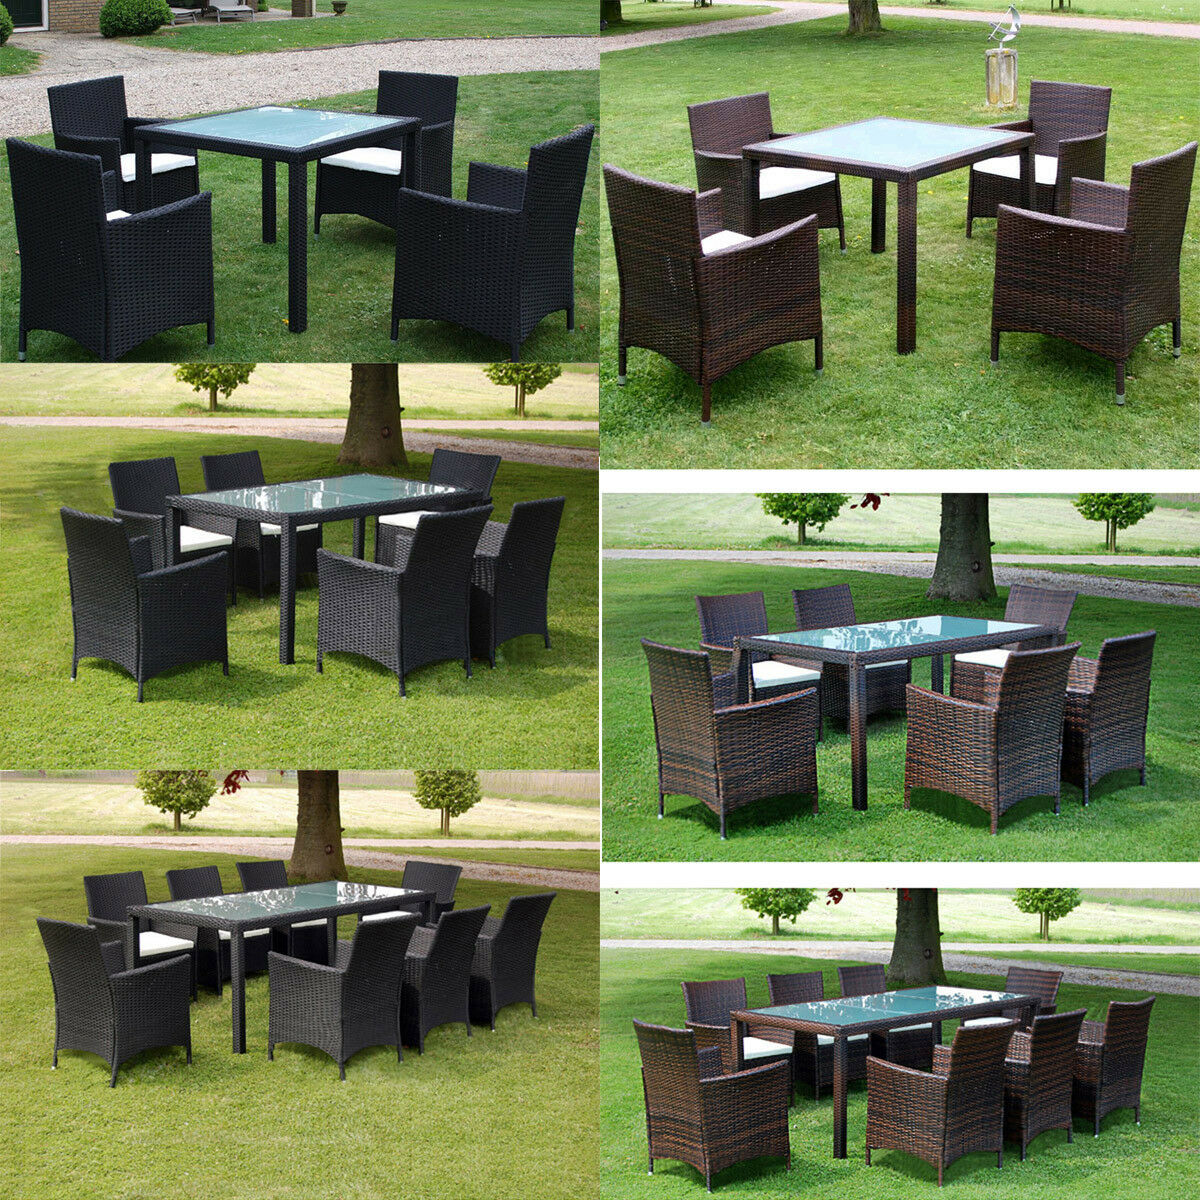 poly rattan gartenm bel set sitzgruppe essgruppe gartengarnitur mehrere auswahl eur 210 99. Black Bedroom Furniture Sets. Home Design Ideas